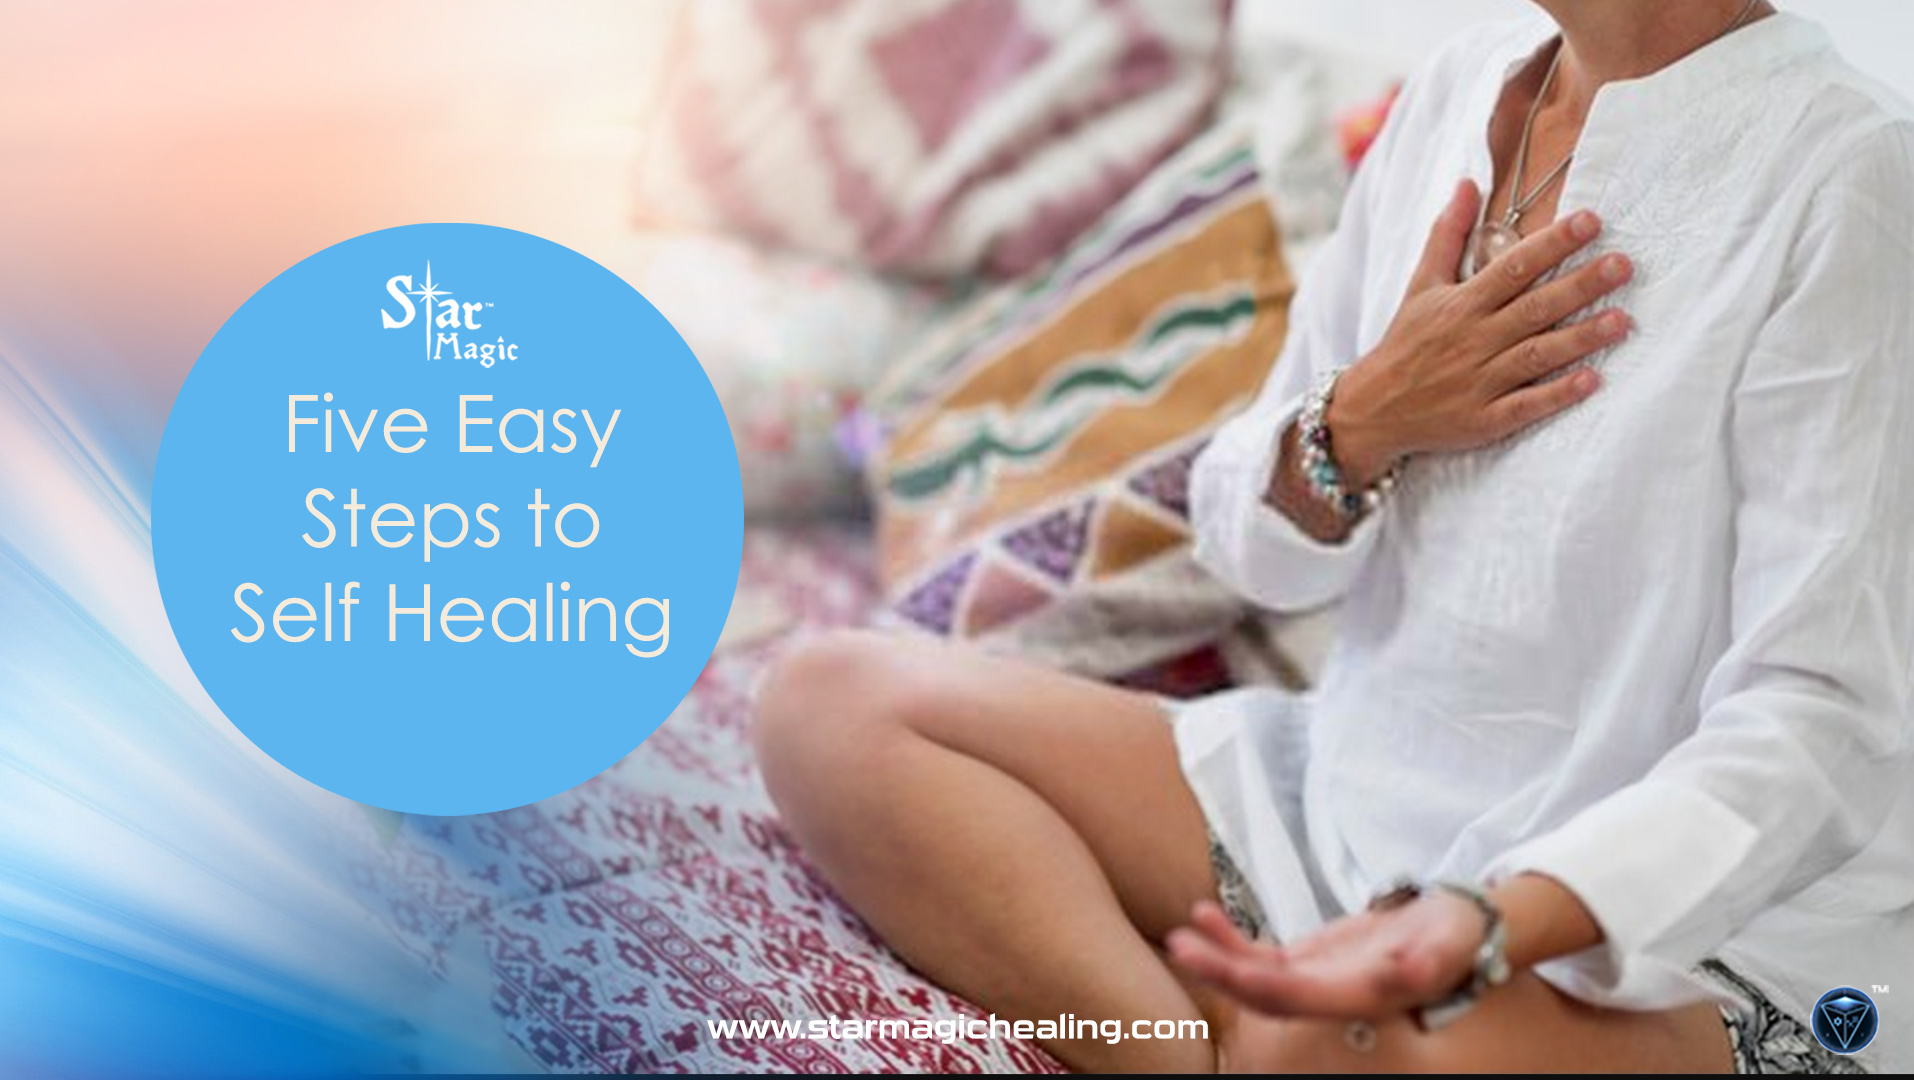 Five Easy Steps to Self-Healing